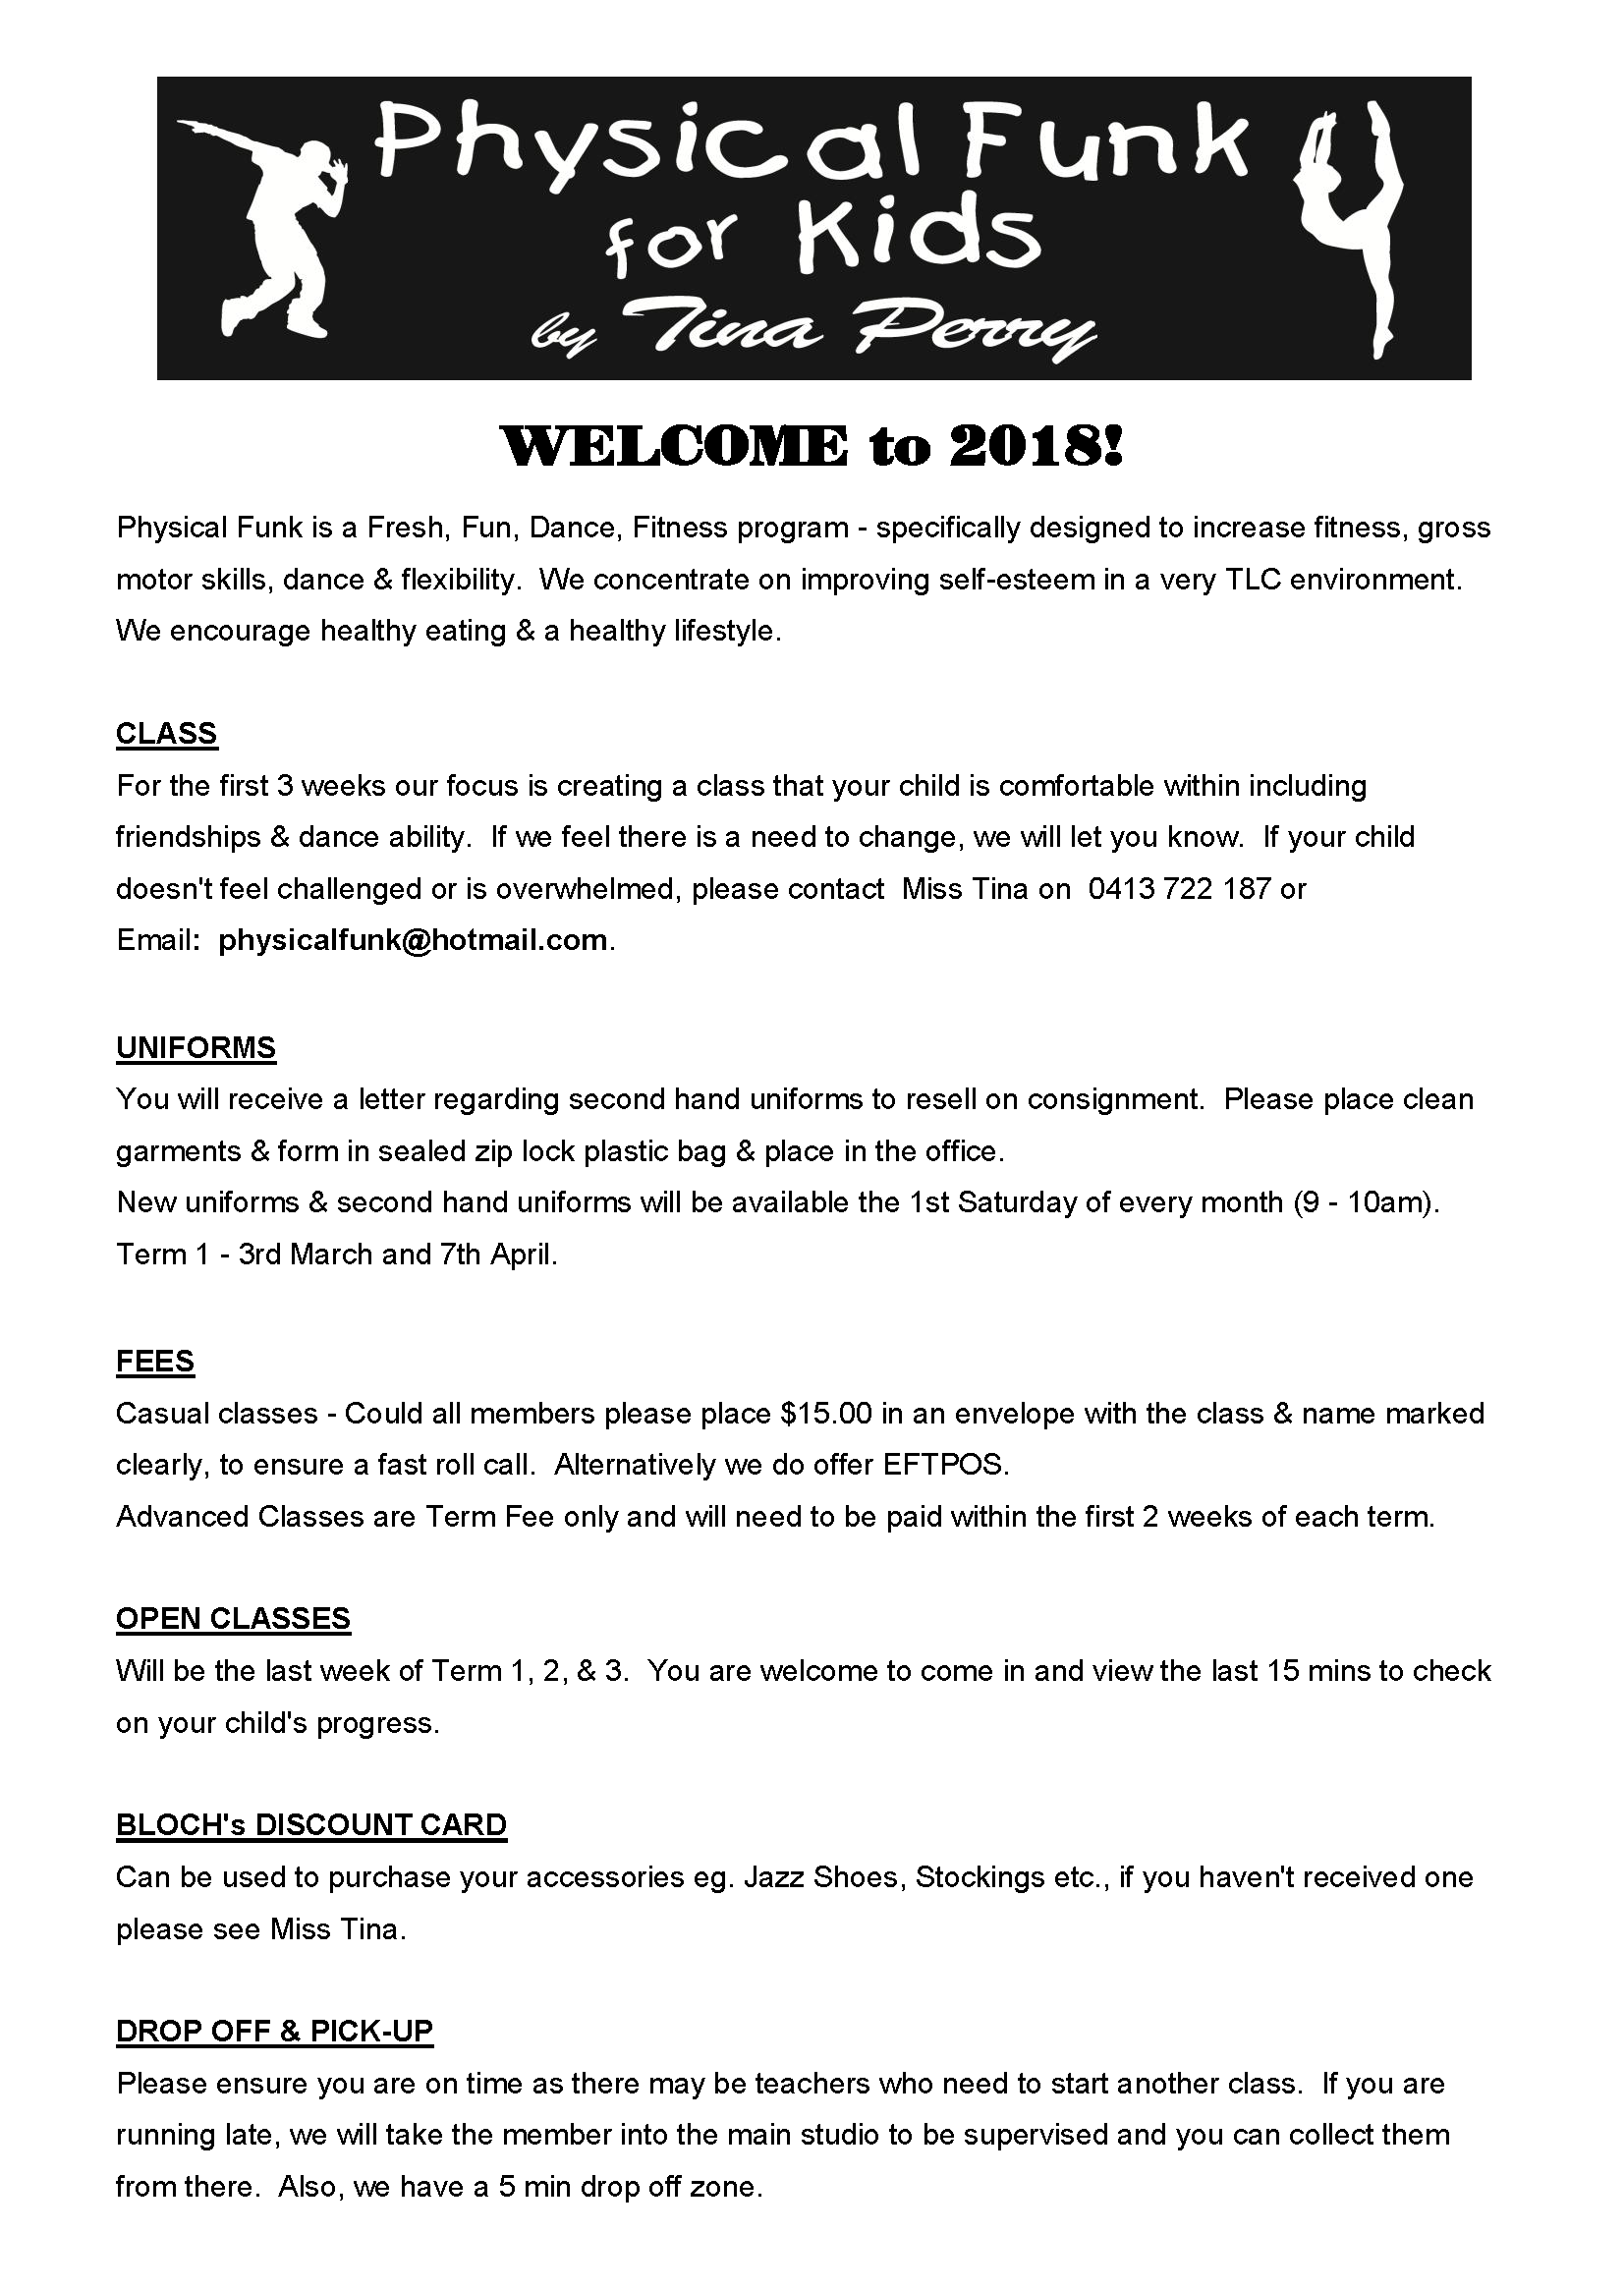 WELCOME NEWSLETTER - TERM 1 - 2018_Page_1.png